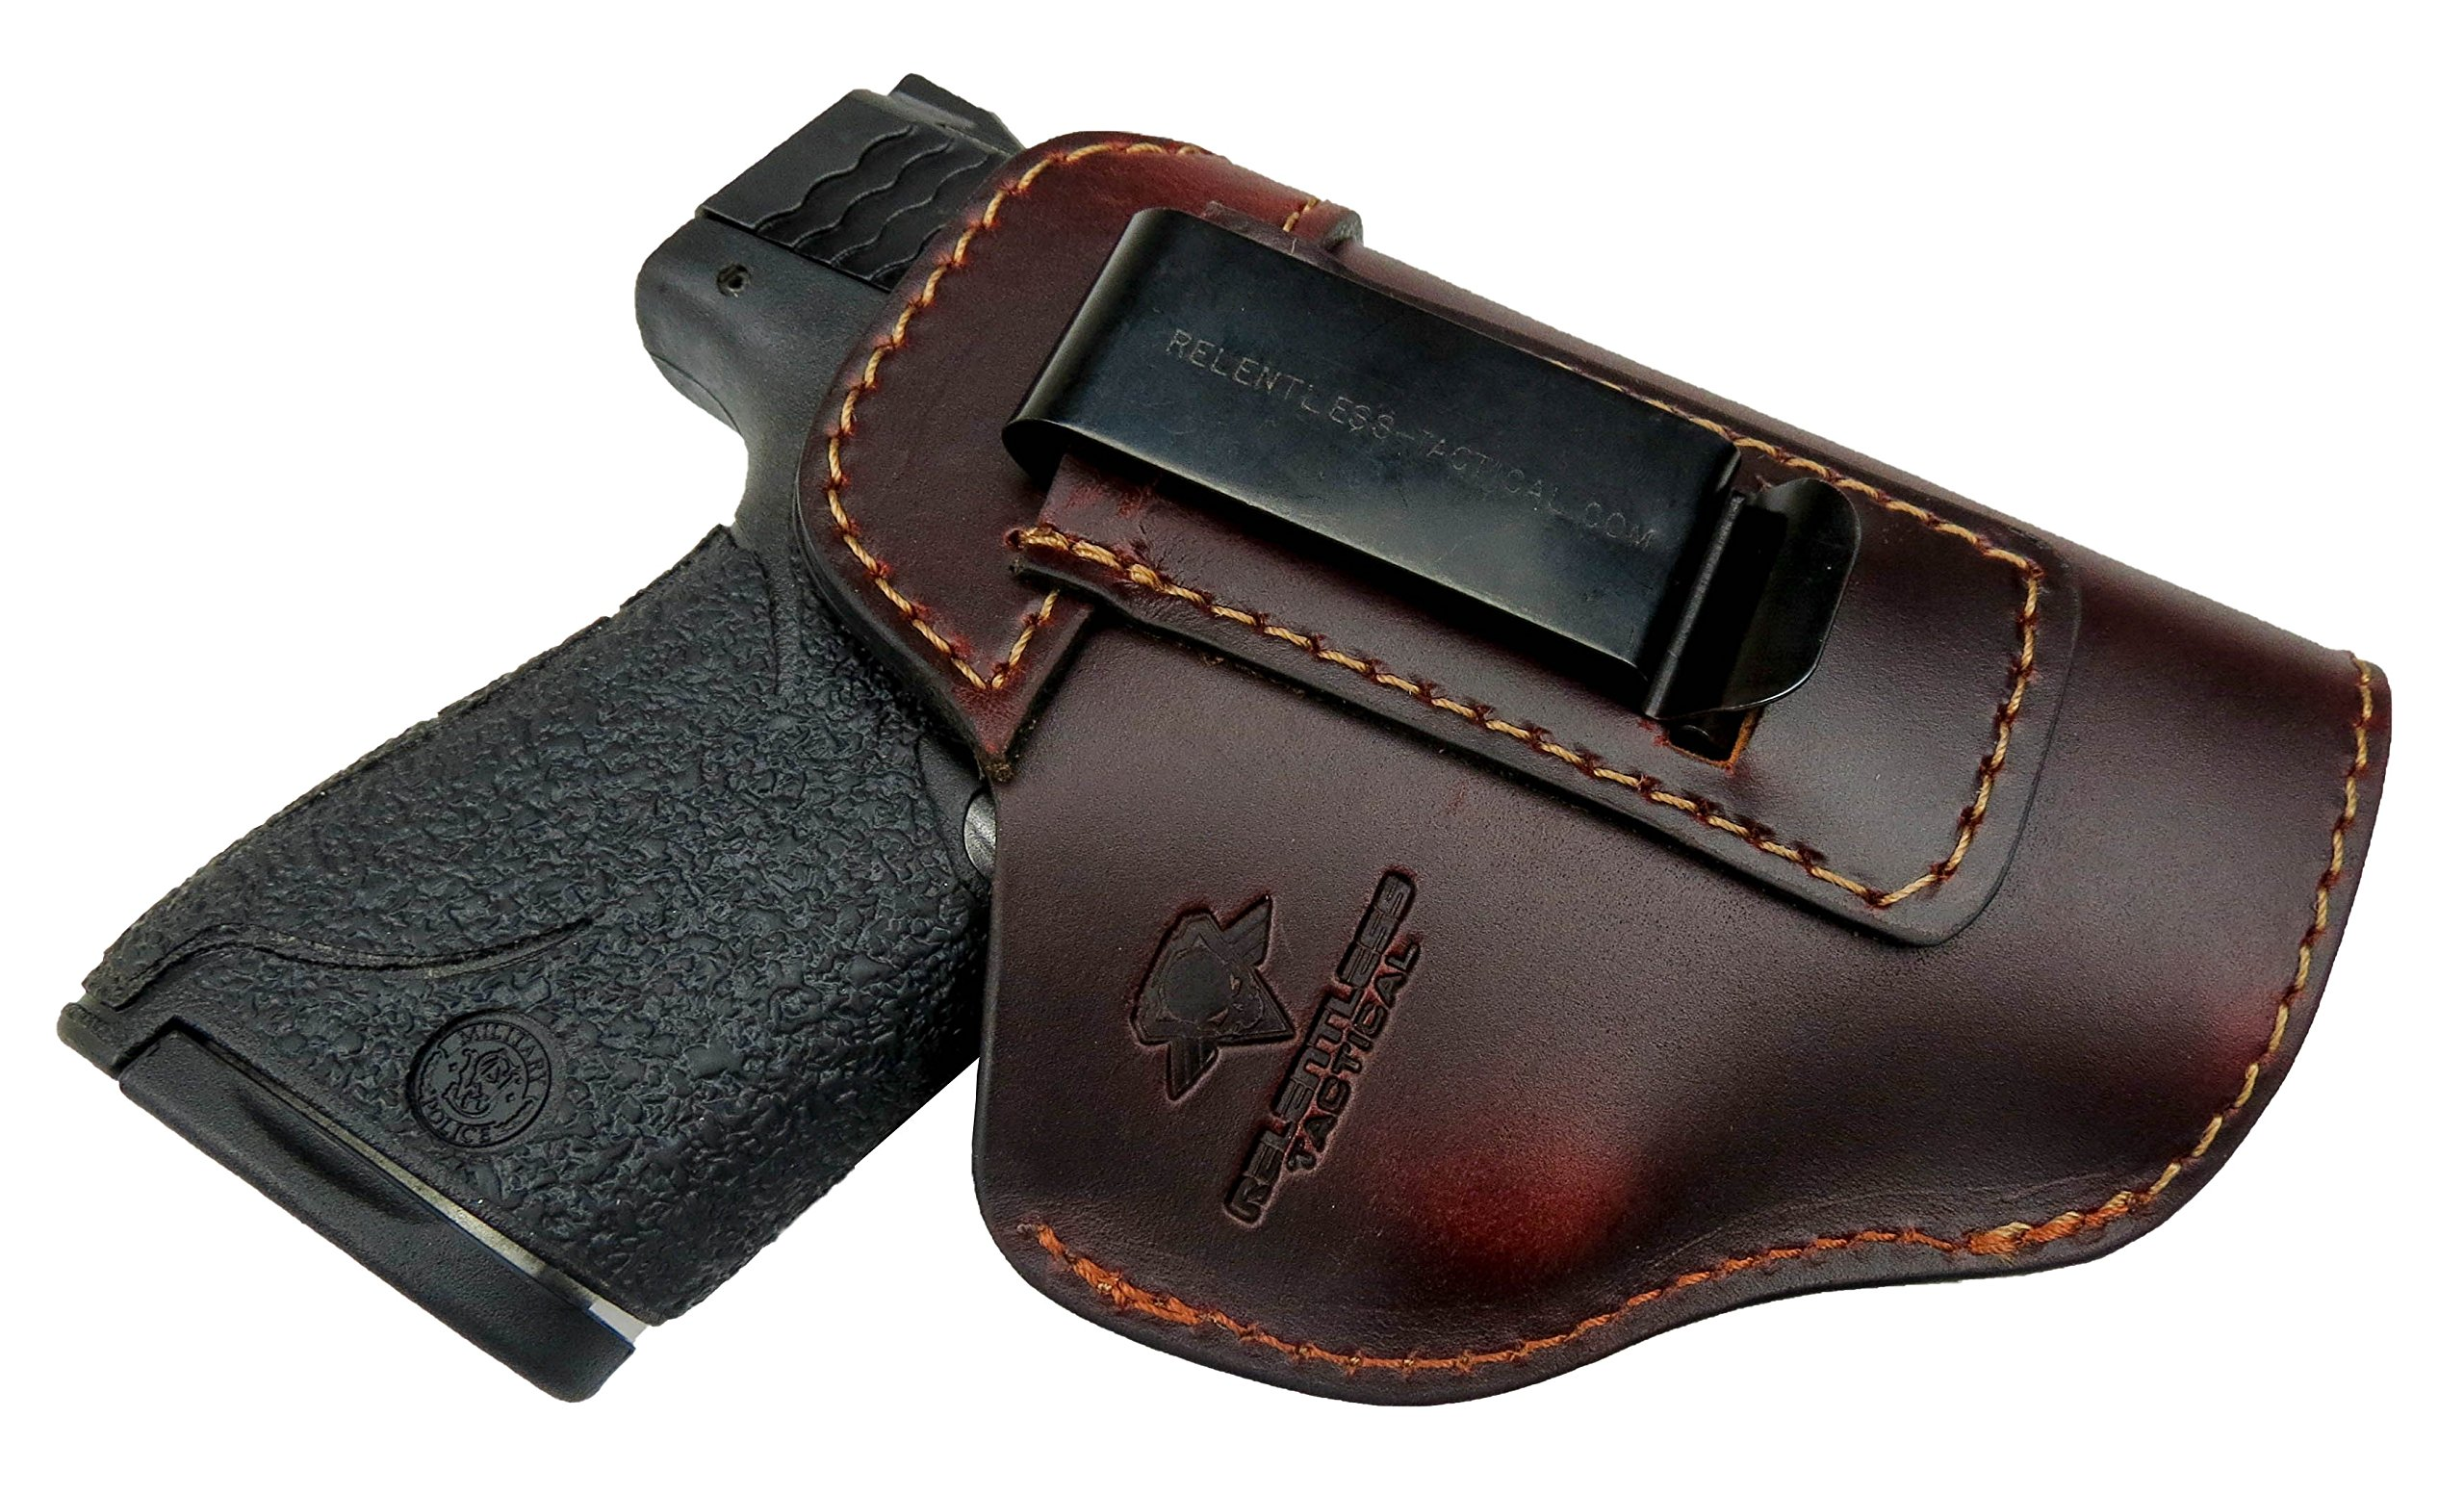 Relentless Tactical The Defender Leather IWB Holster - Made in USA - For S&W M&P Shield - GLOCK 17 19 22 23 32 33/Springfield XD & XDS/Plus All Similar Sized Handguns - Brown - Right Handed by Relentless Tactical